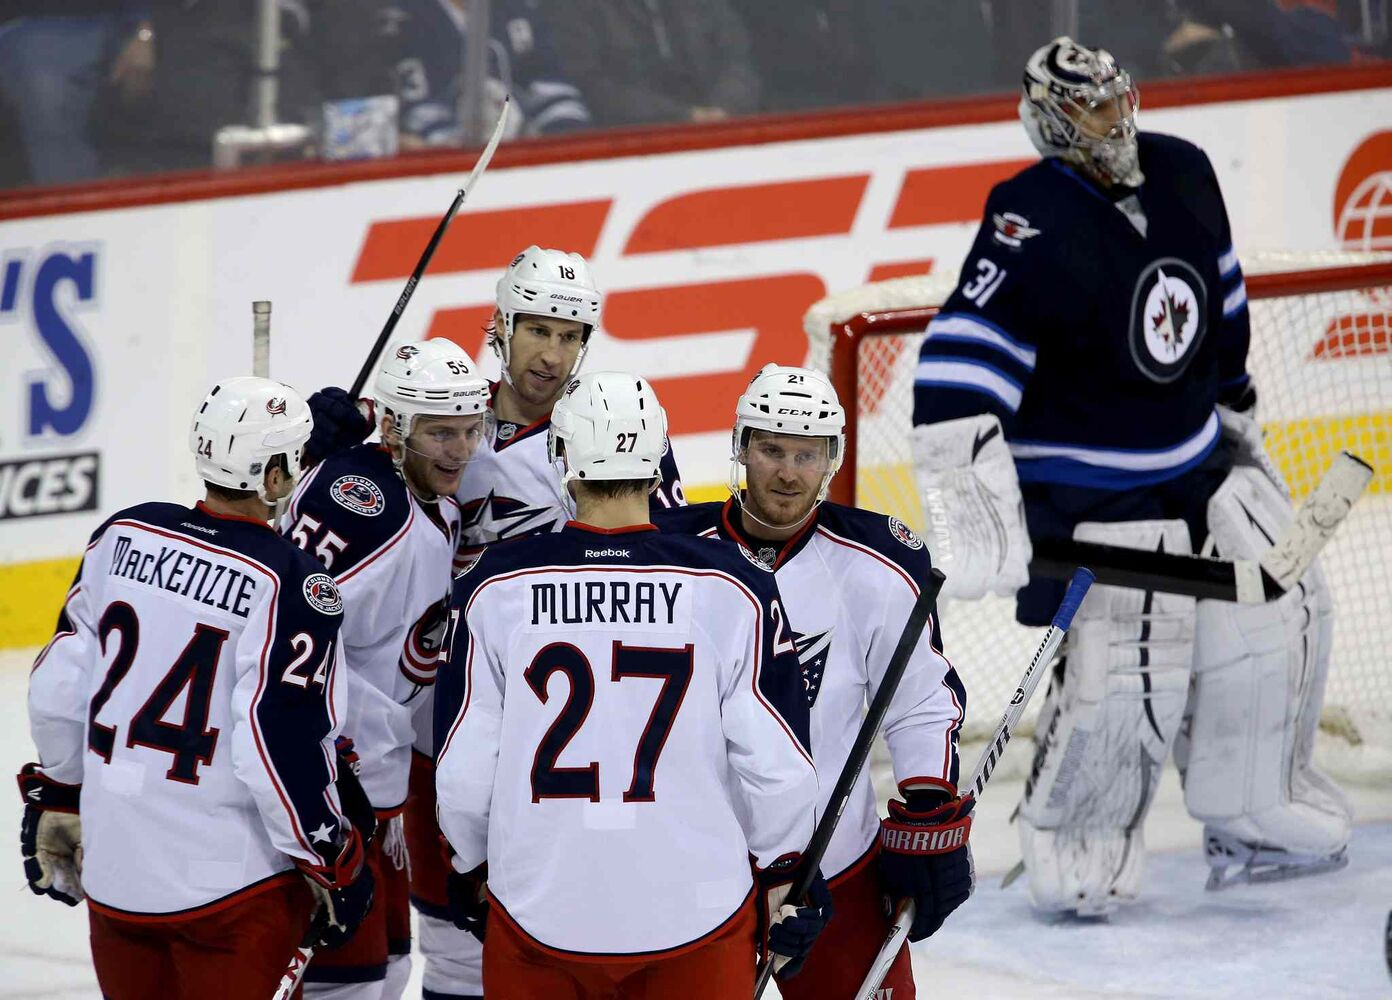 Columbus Blue Jackets' Derek MacKenzie (24), Mark Letestu (55), RJ Umberger (18), Ryan Murray (27) and James Wisniewski (21) celebrate after Letestu scored on Winnipeg Jets' goaltender Ondrej Pavelec (31) during the third period Saturday. (Trevor Hagan / Winnipeg Free Press)